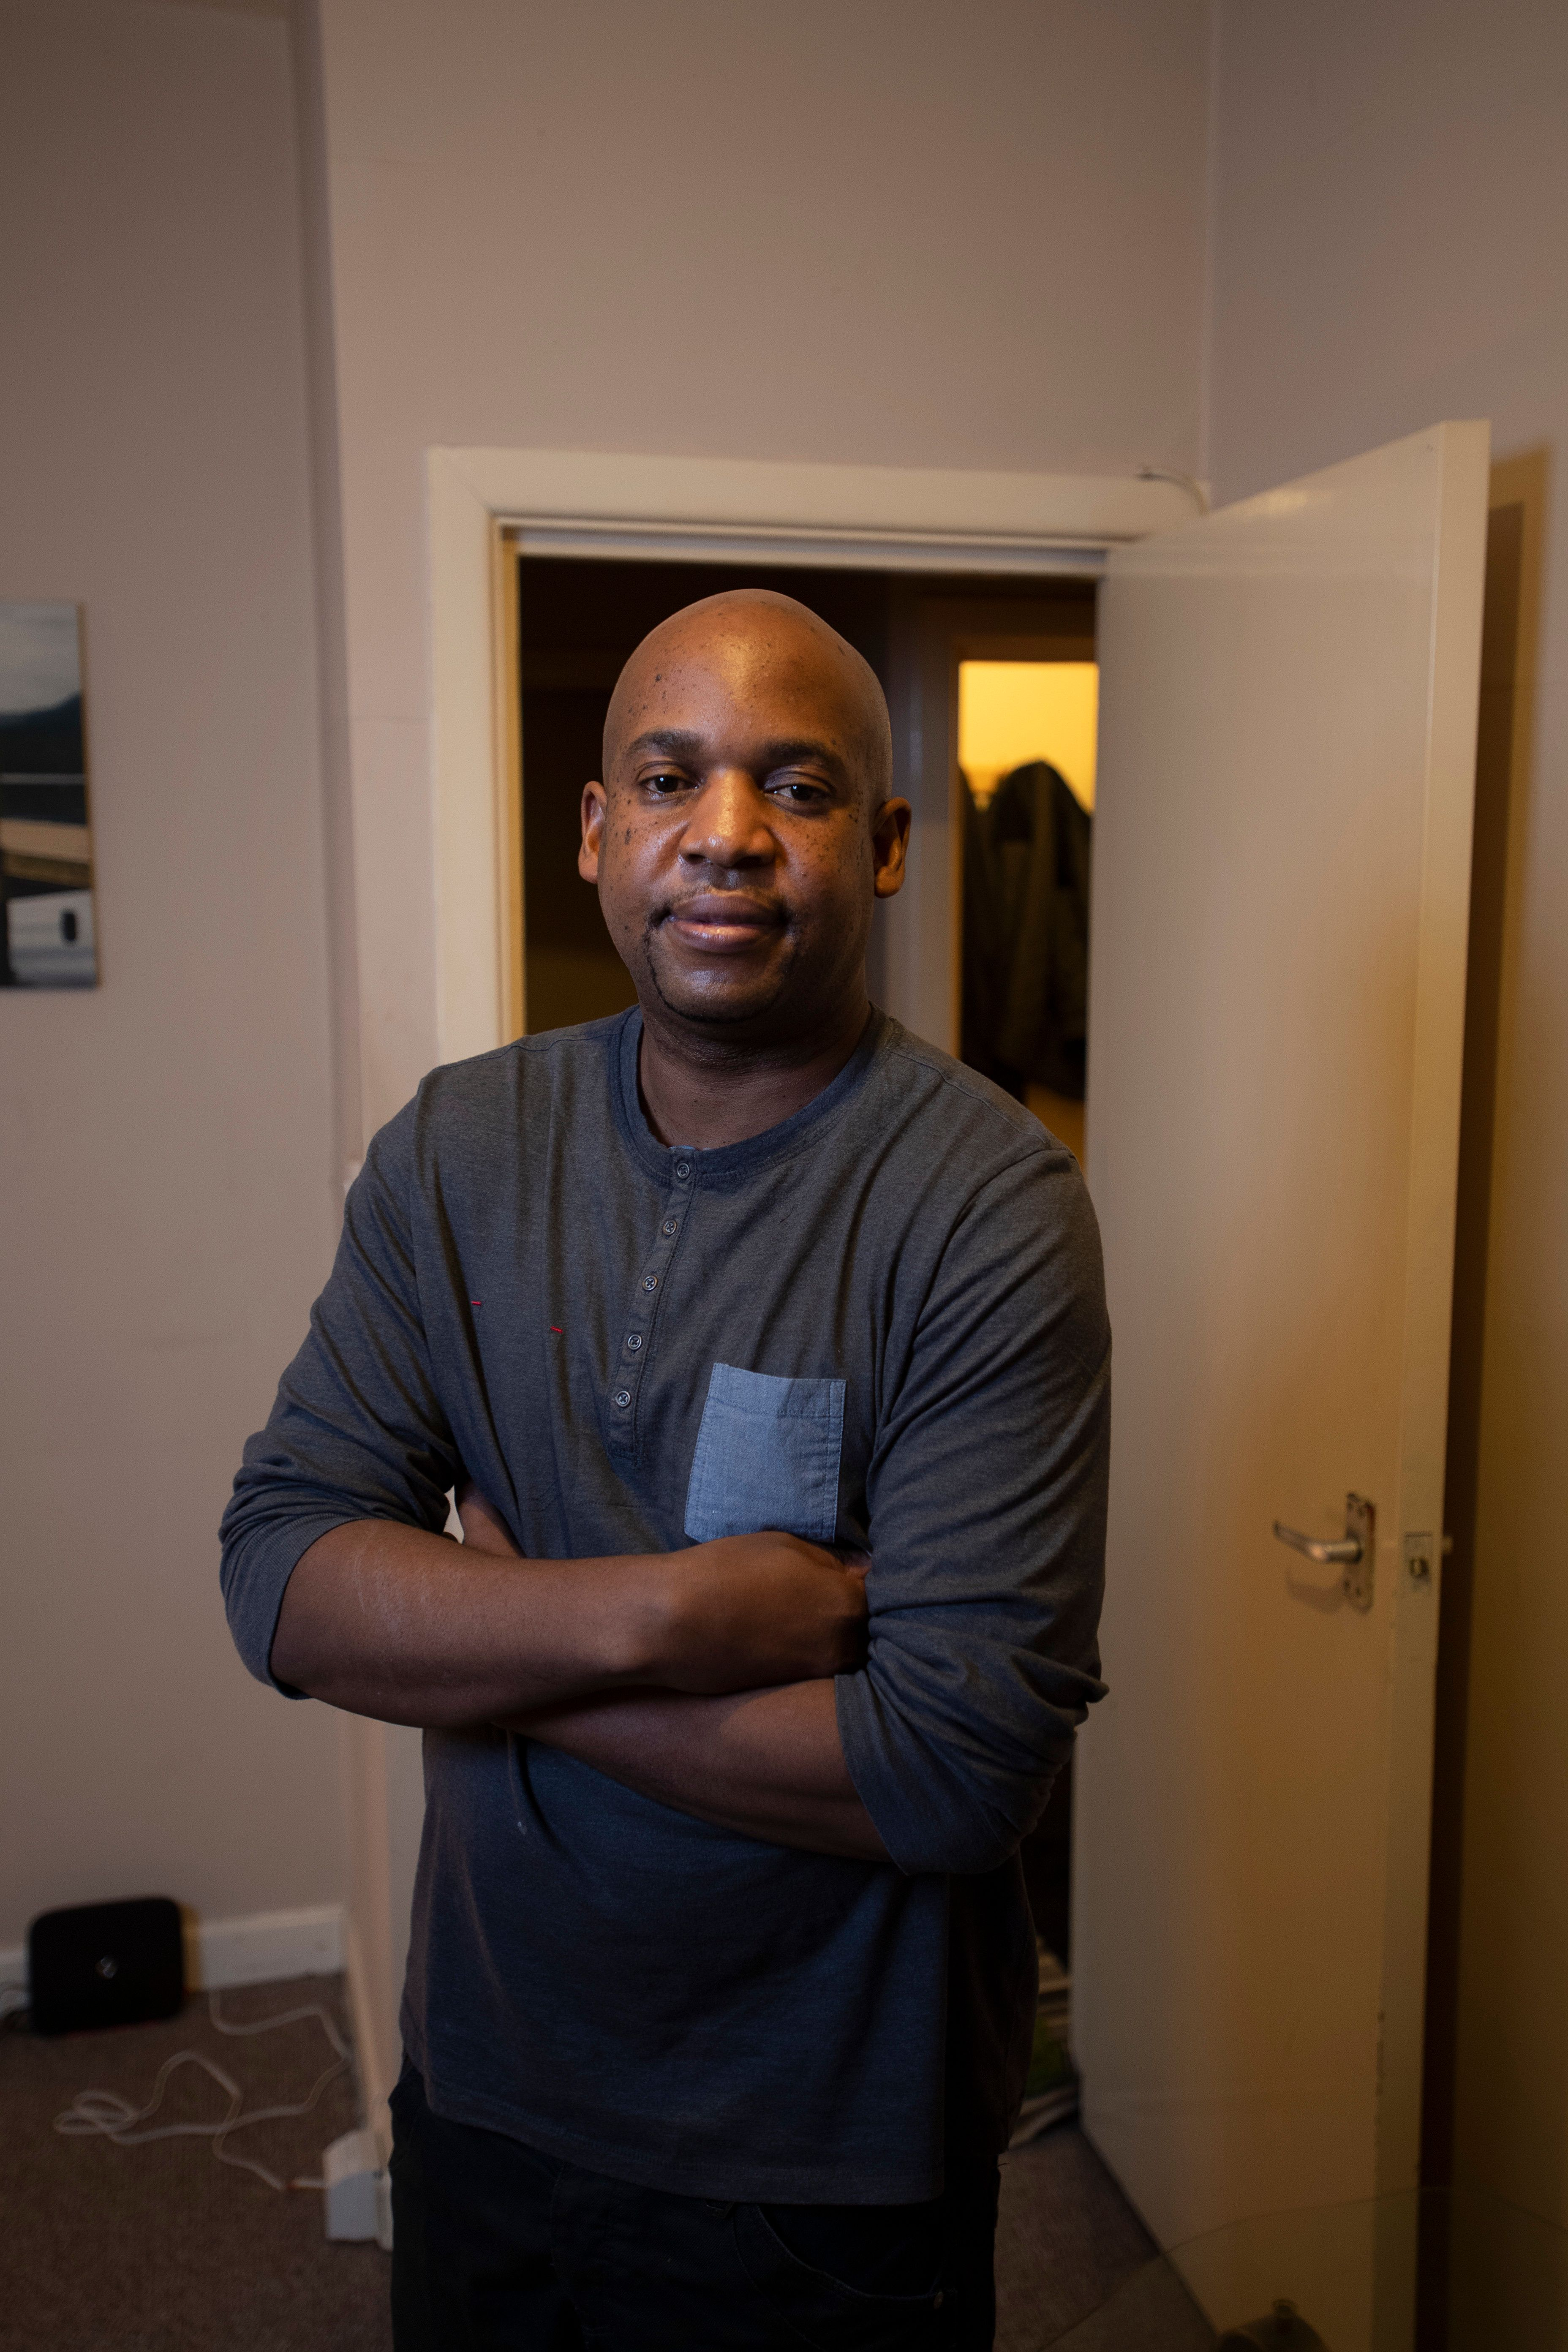 Universal Credit: This Is What It's Like Surviving On Benefits At A Time Of Huge Change In The